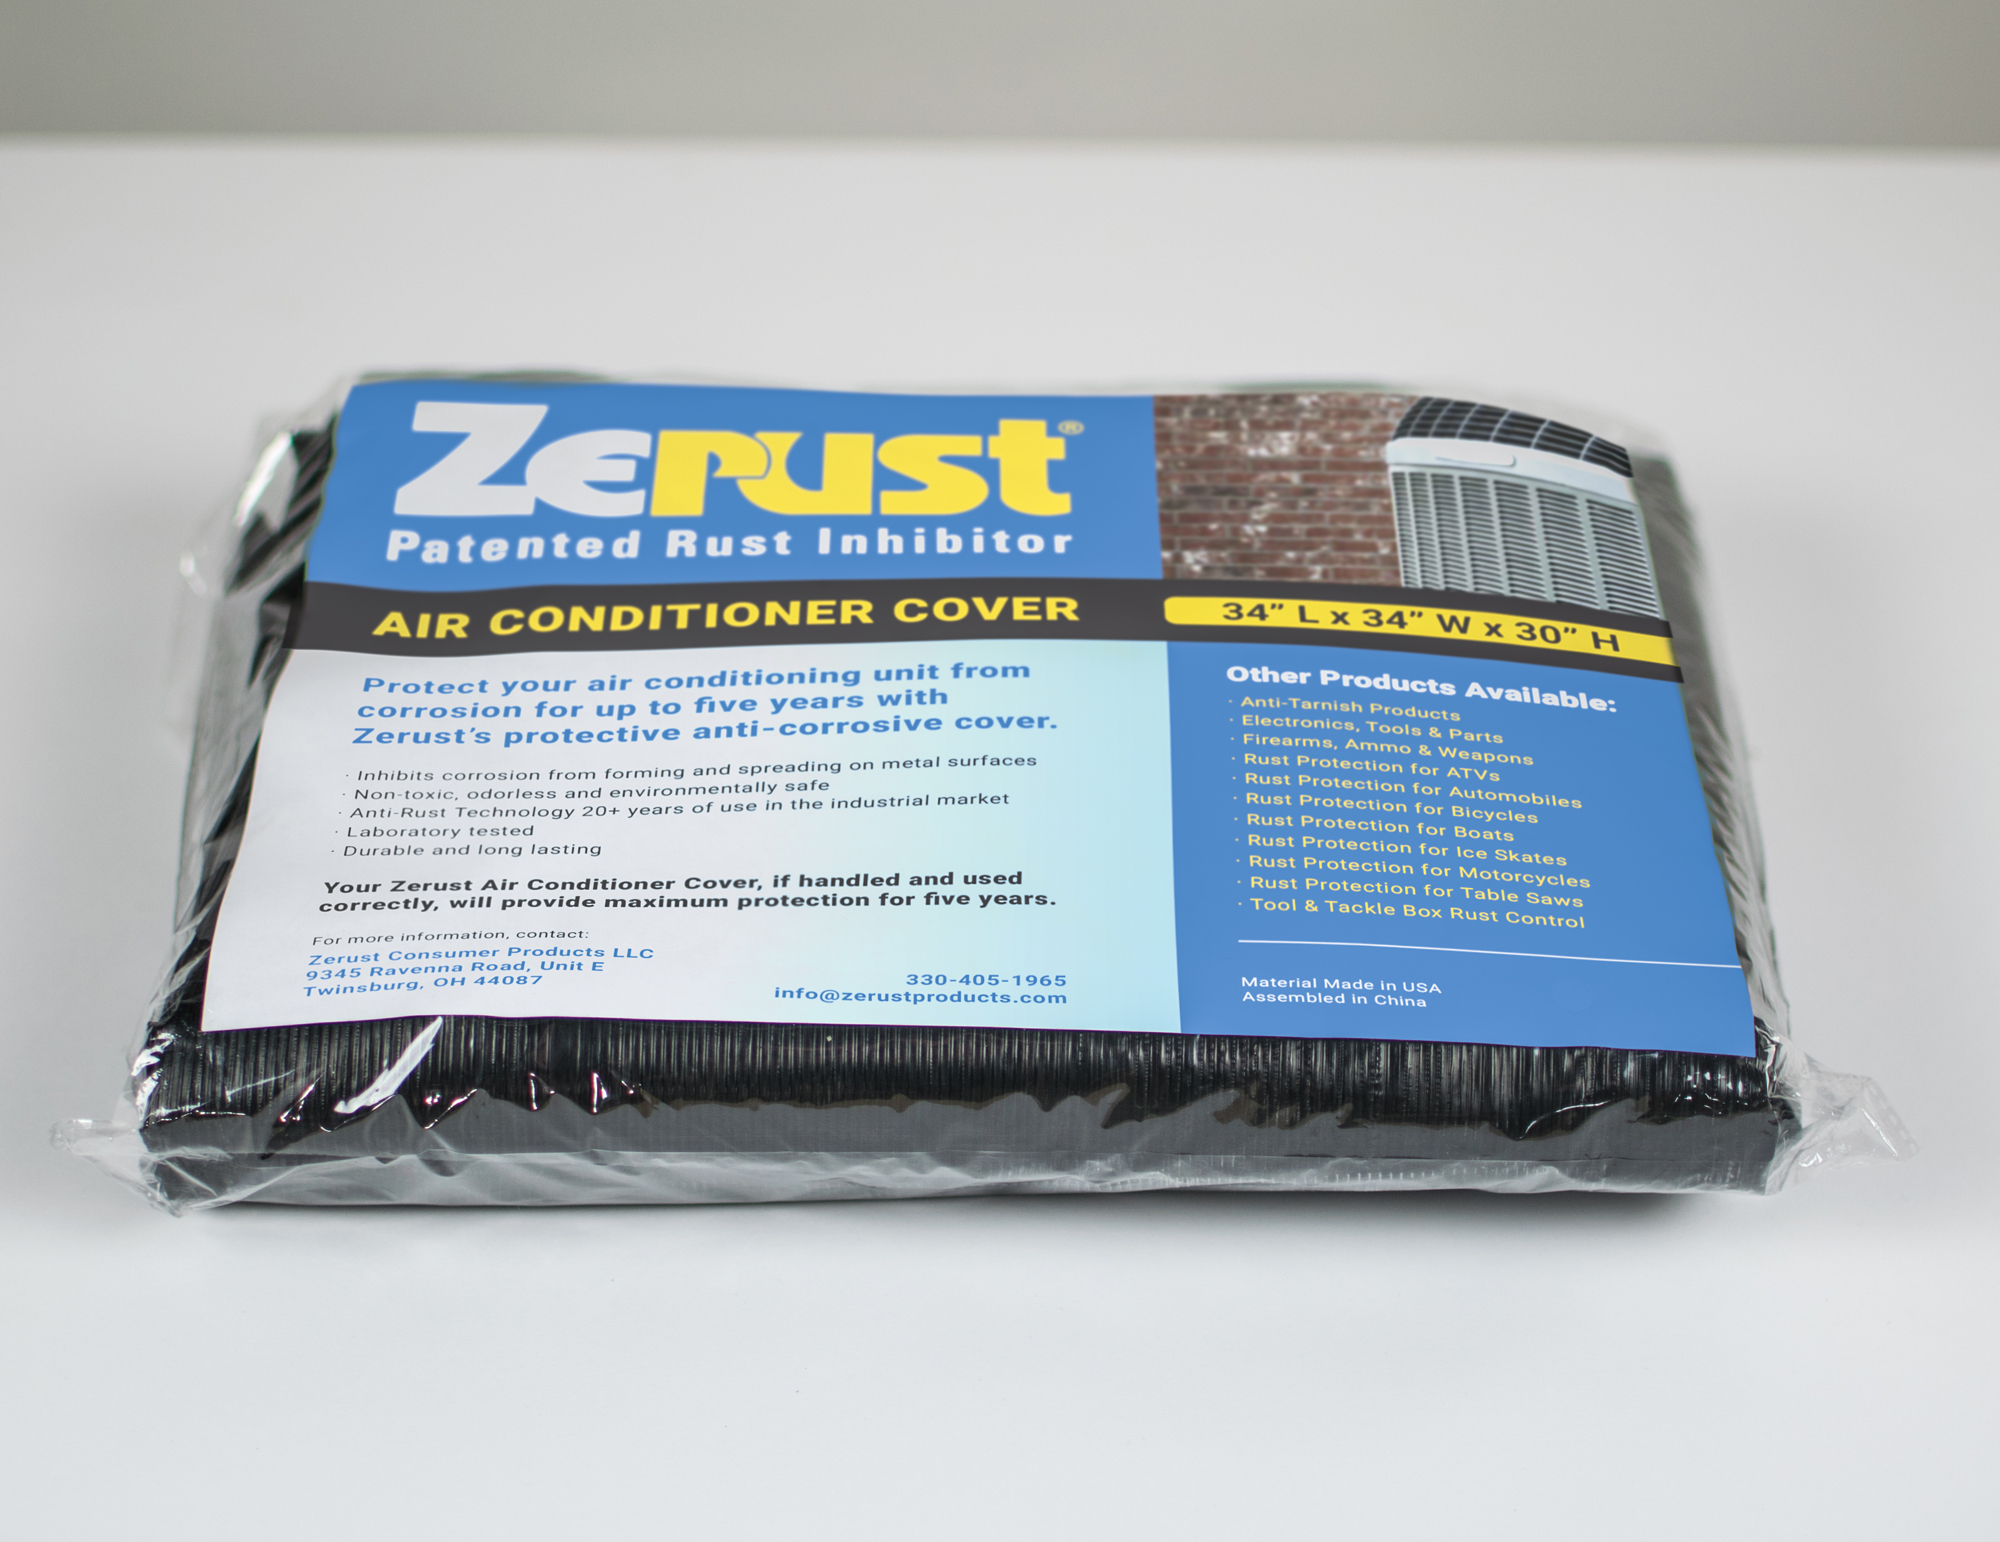 zerust-anti-rust-air-conditioner-cover-inside-package-front